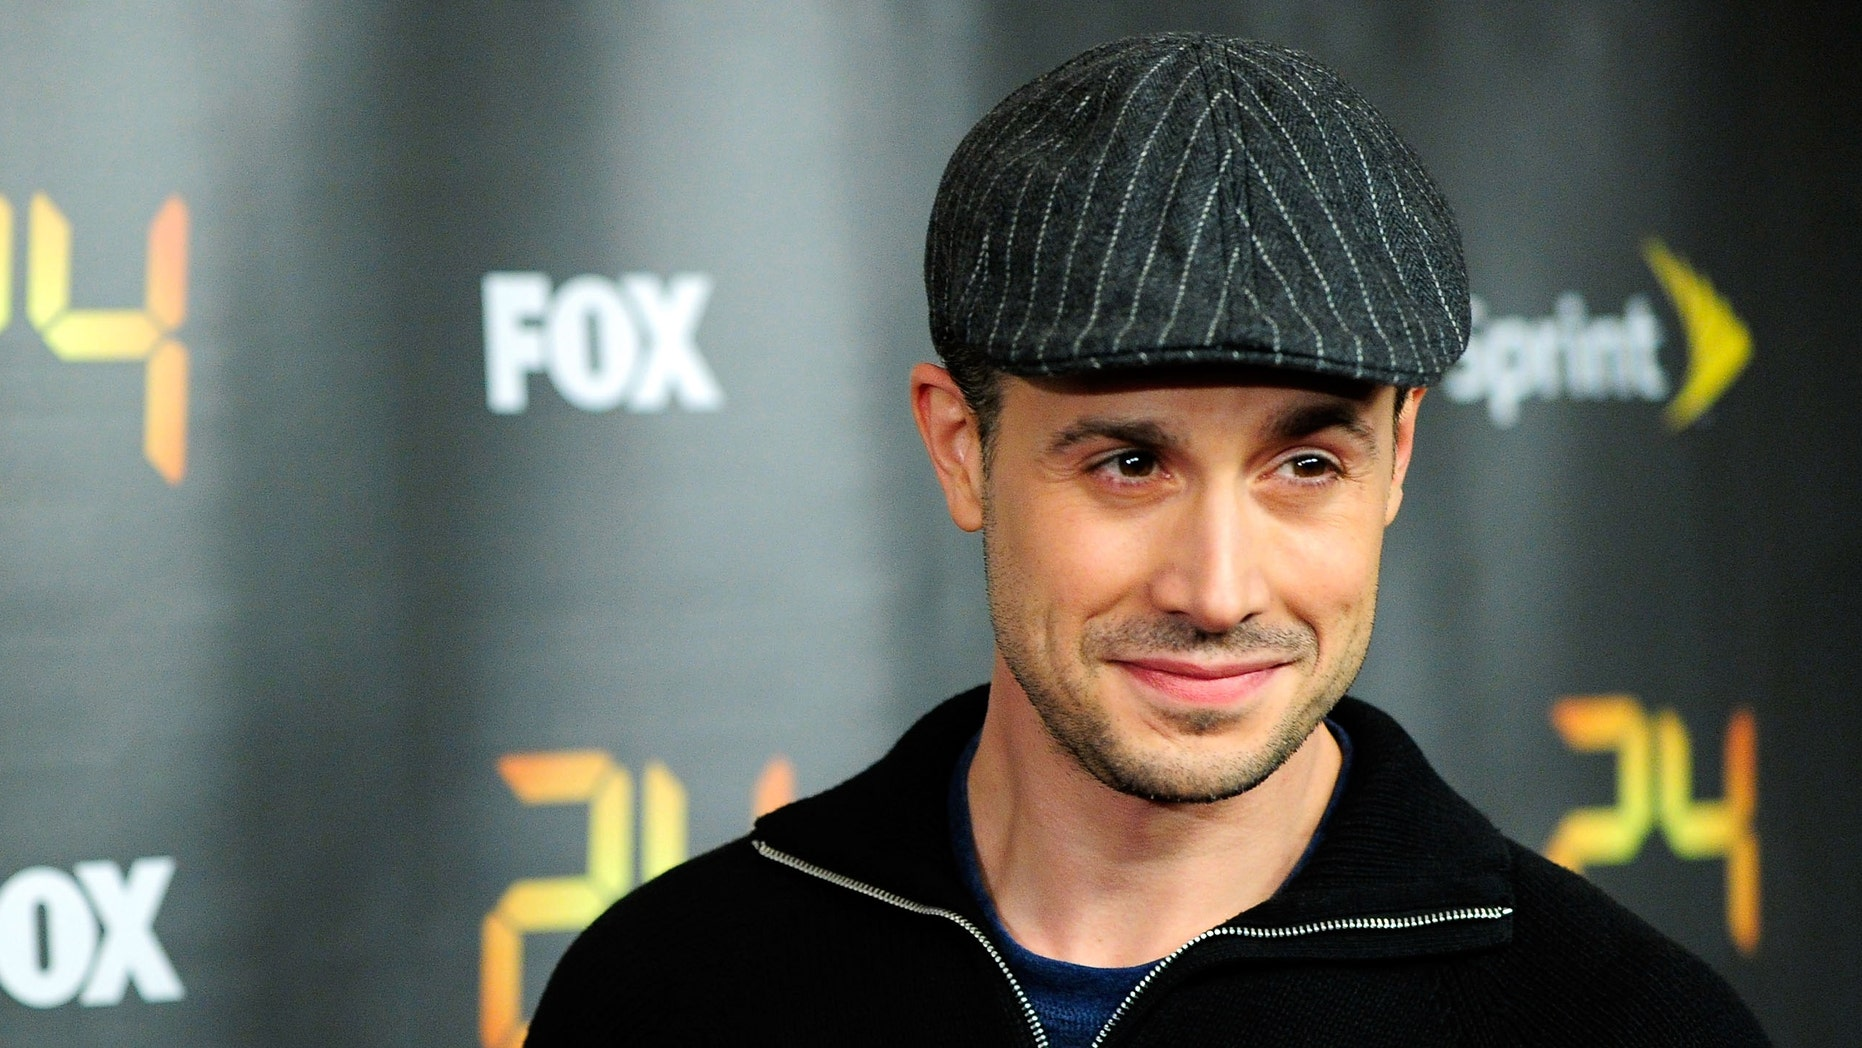 """NEW YORK - JANUARY 14: Actor Freddie Prinze Jr. attends the season premiere for the eighth season of the television series """"24"""" at Jack H. Skirball Center for the Performing Arts on January 14, 2010 in New York, New York. (Photo by Jemal Countess/Getty Images)"""